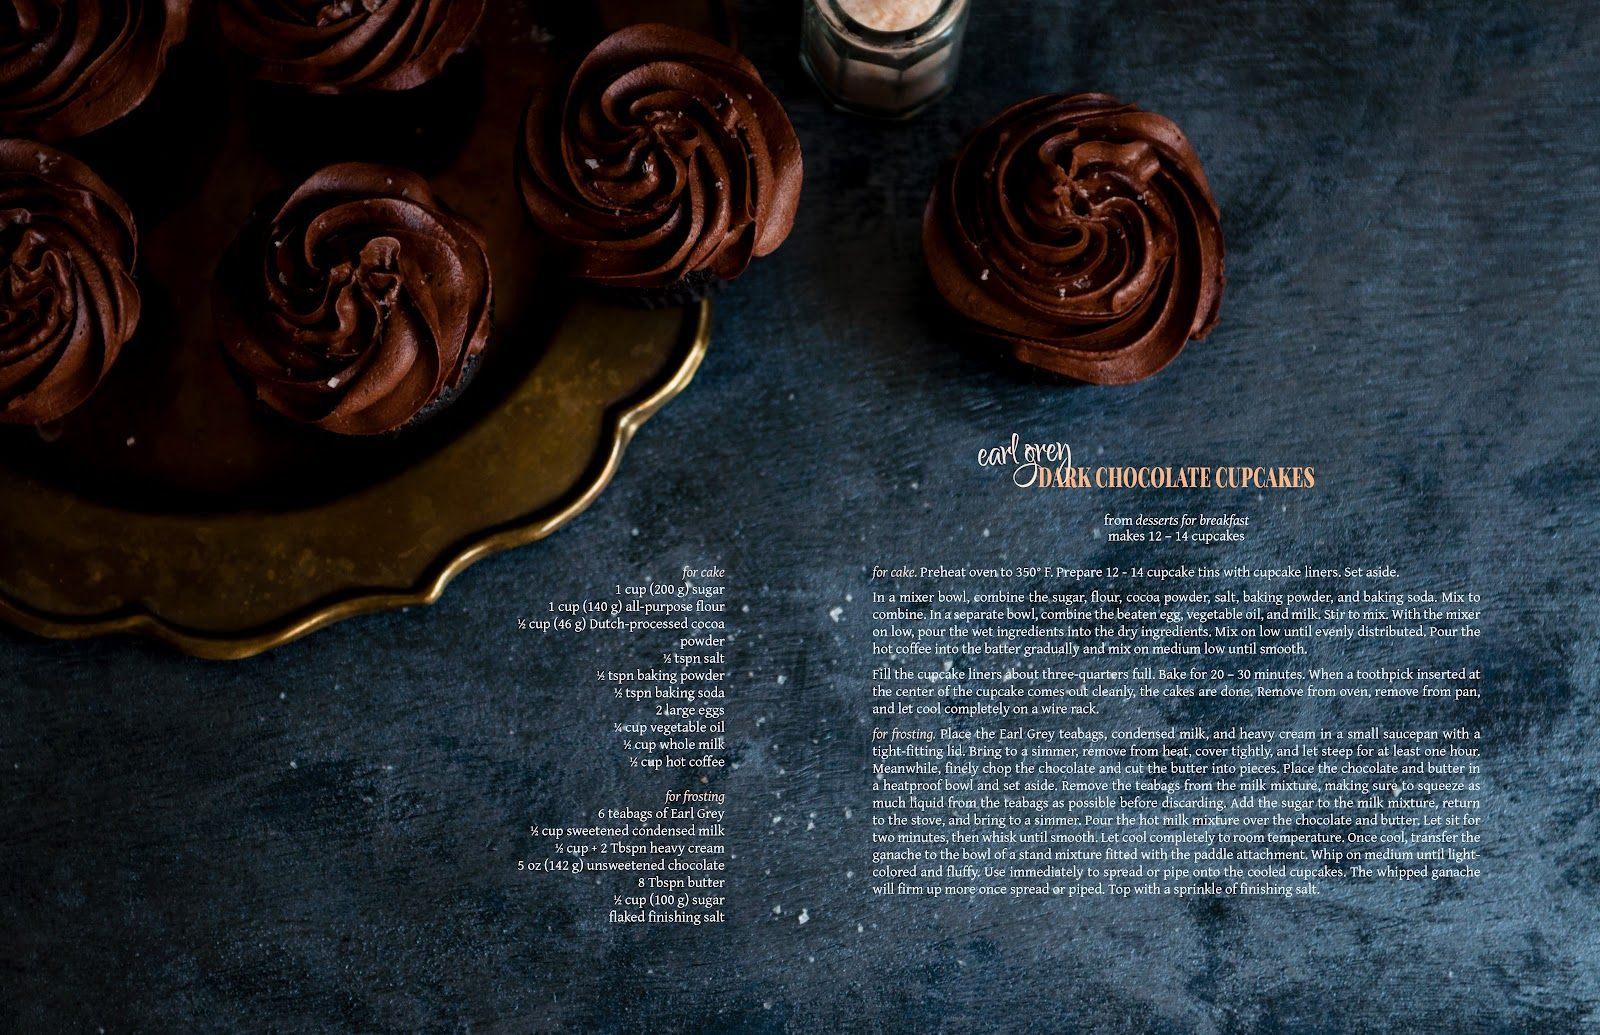 Desserts for Breakfast: Announcing sated magazine! and Earl Grey Dark Chocolate Cupcakes.